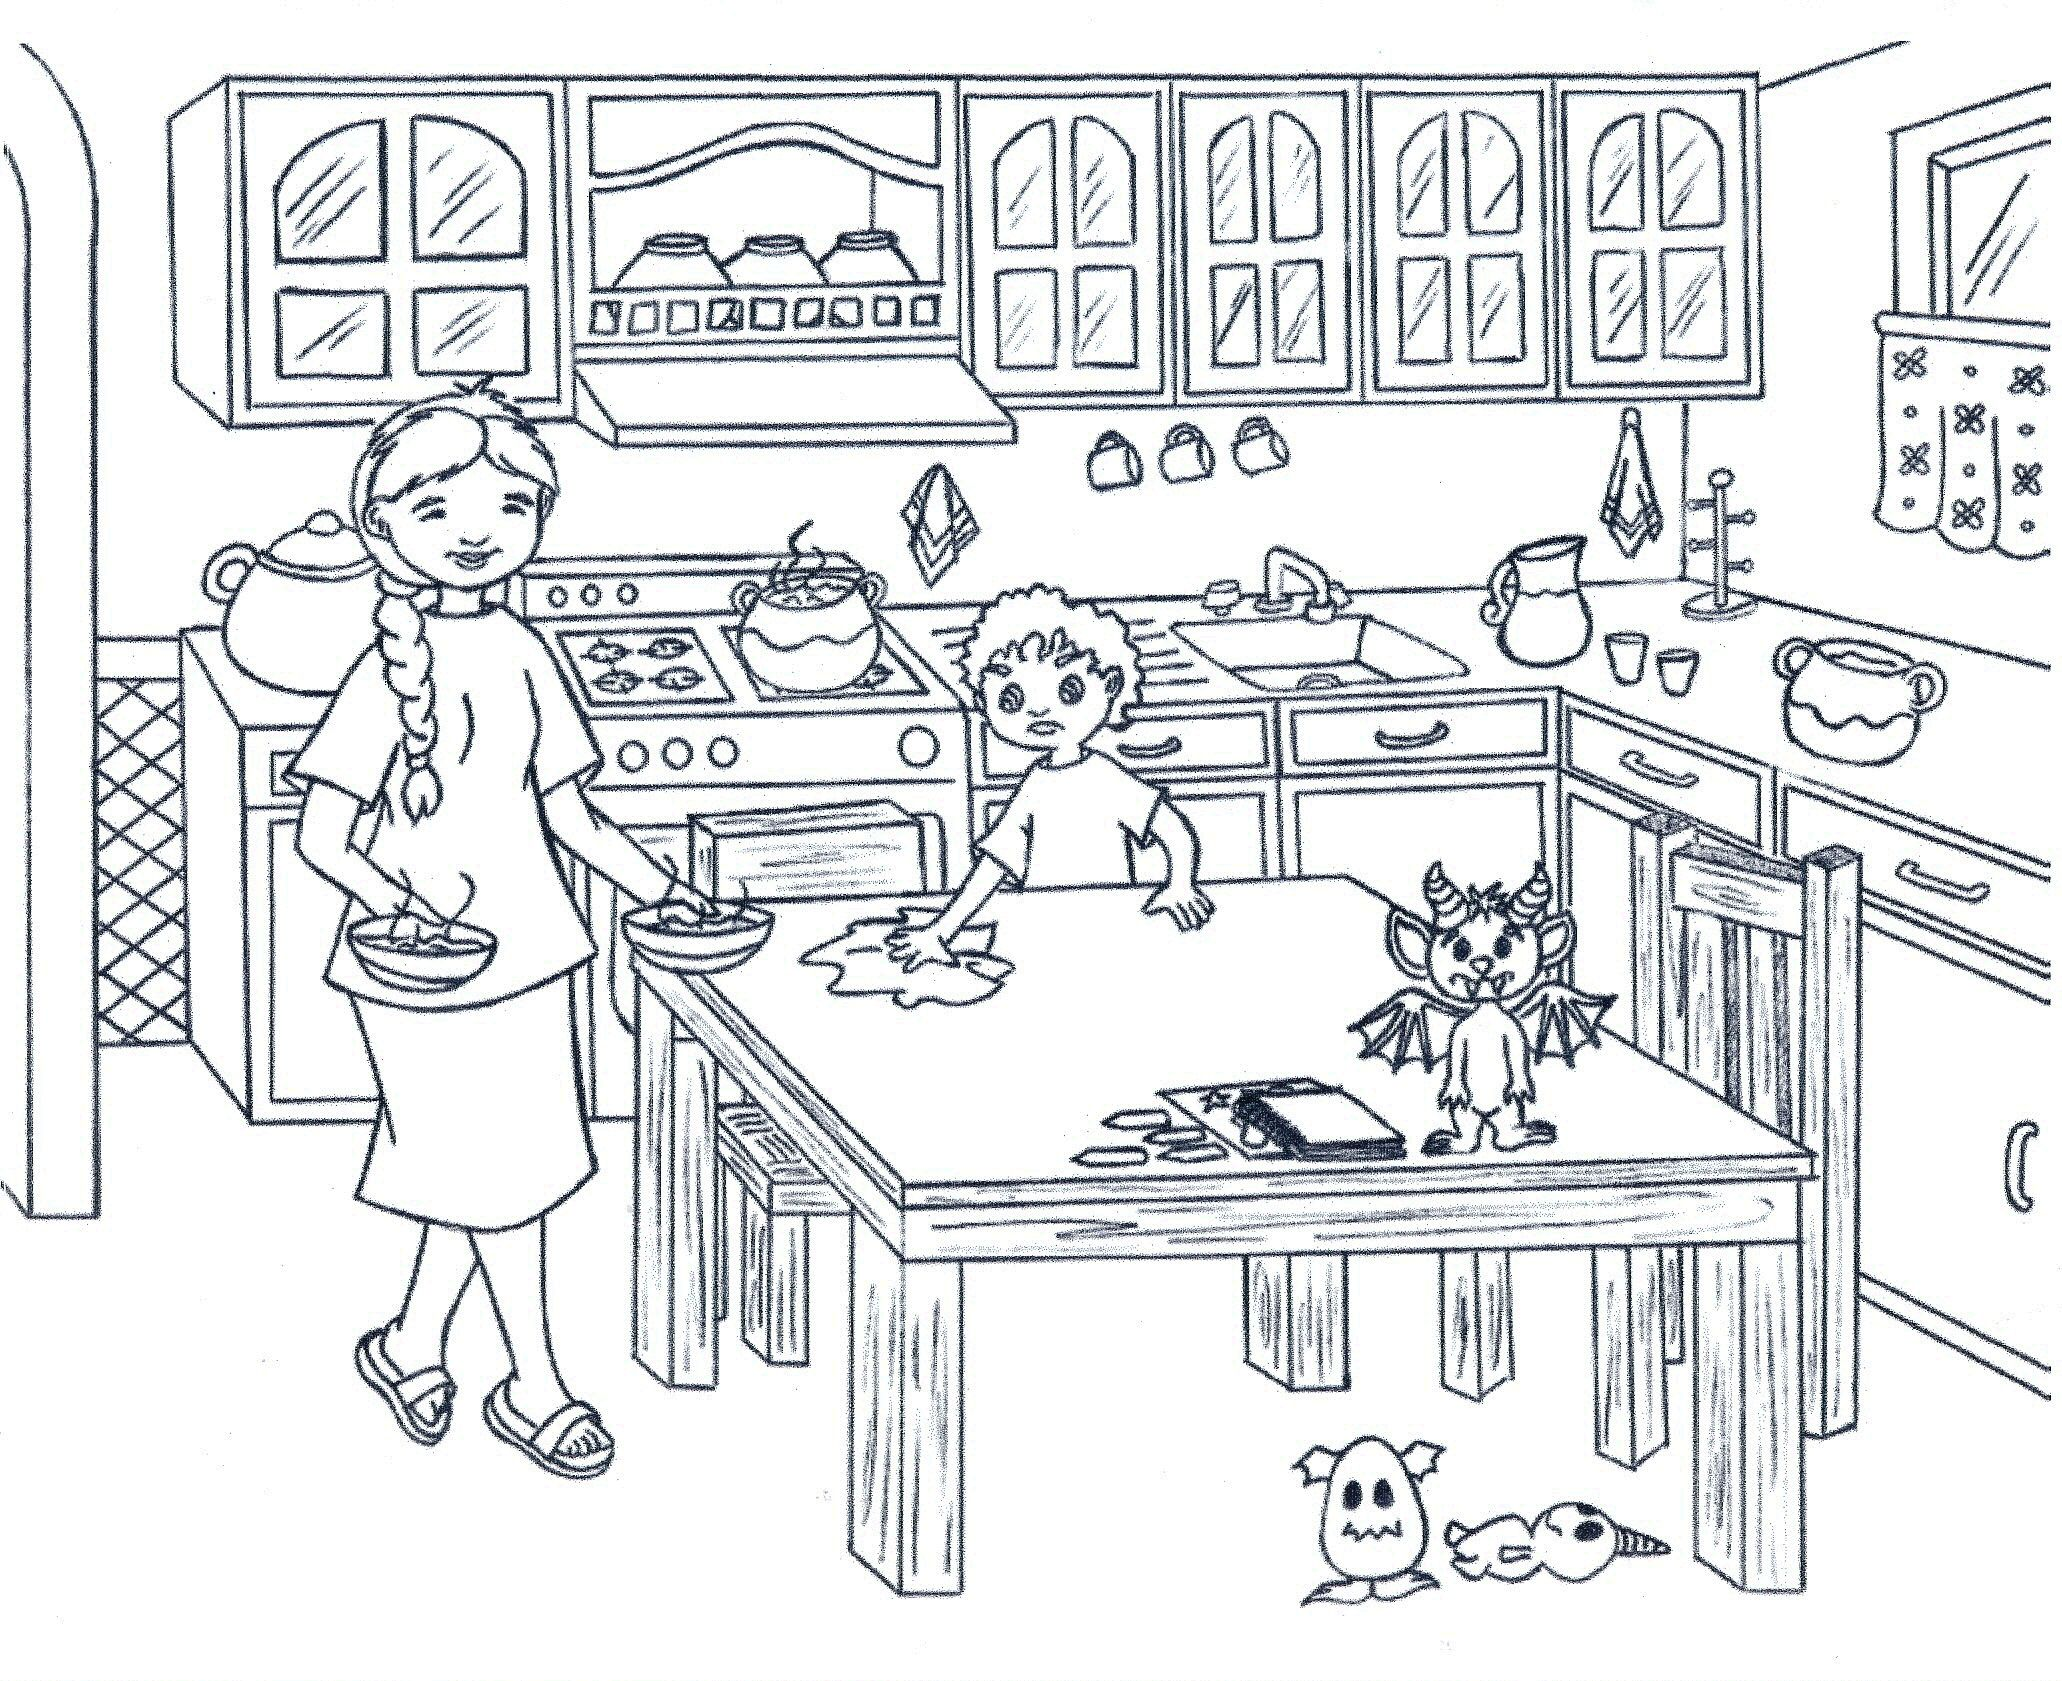 Coloring Pages Kitchen 03 Coloring Pages Color Colouring Pages